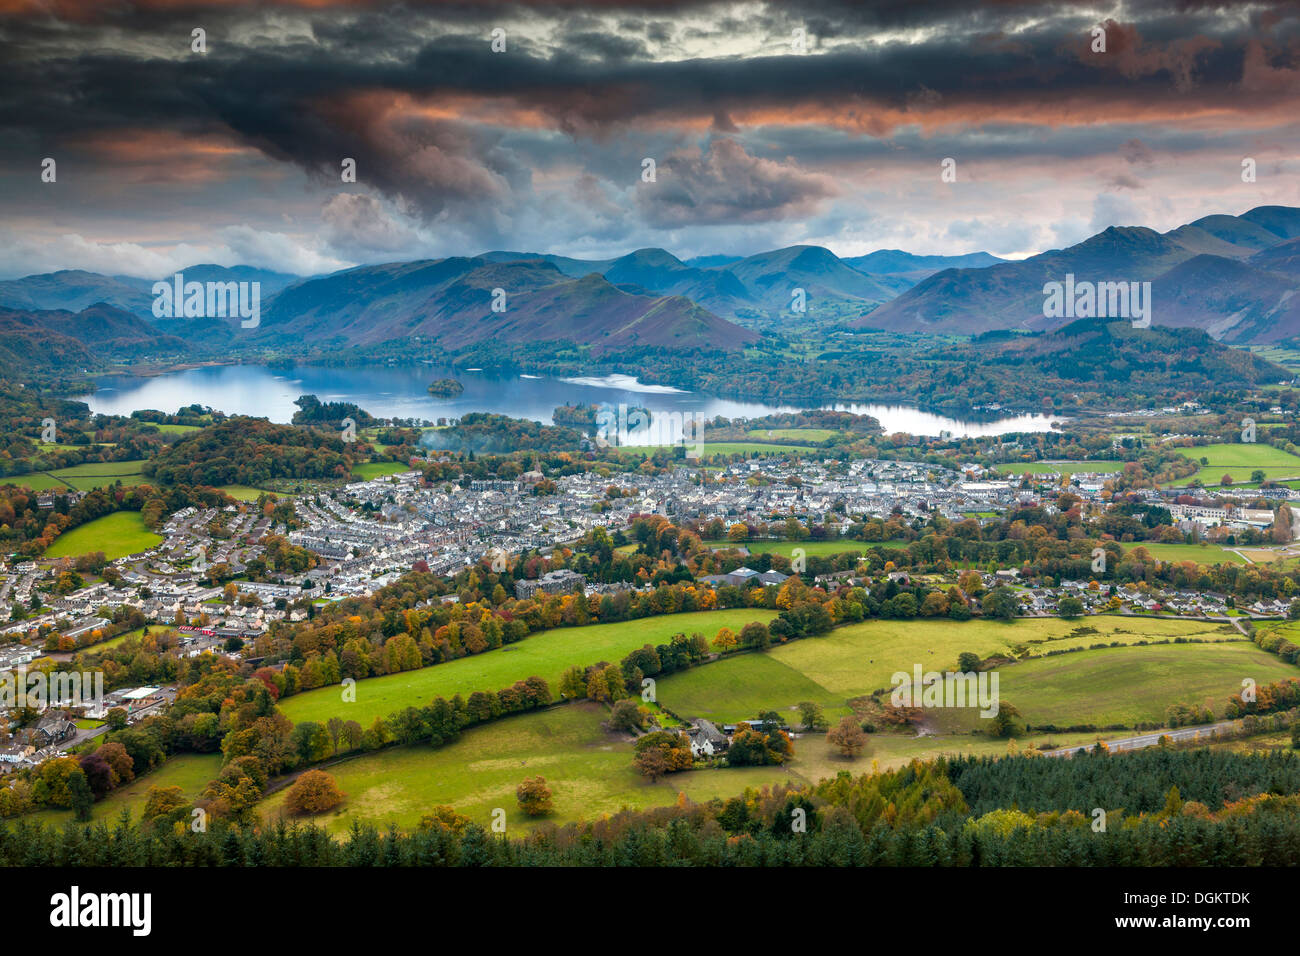 View over Keswick and Derwent Water from Latrigg summit in the Lake District National Park. - Stock Image